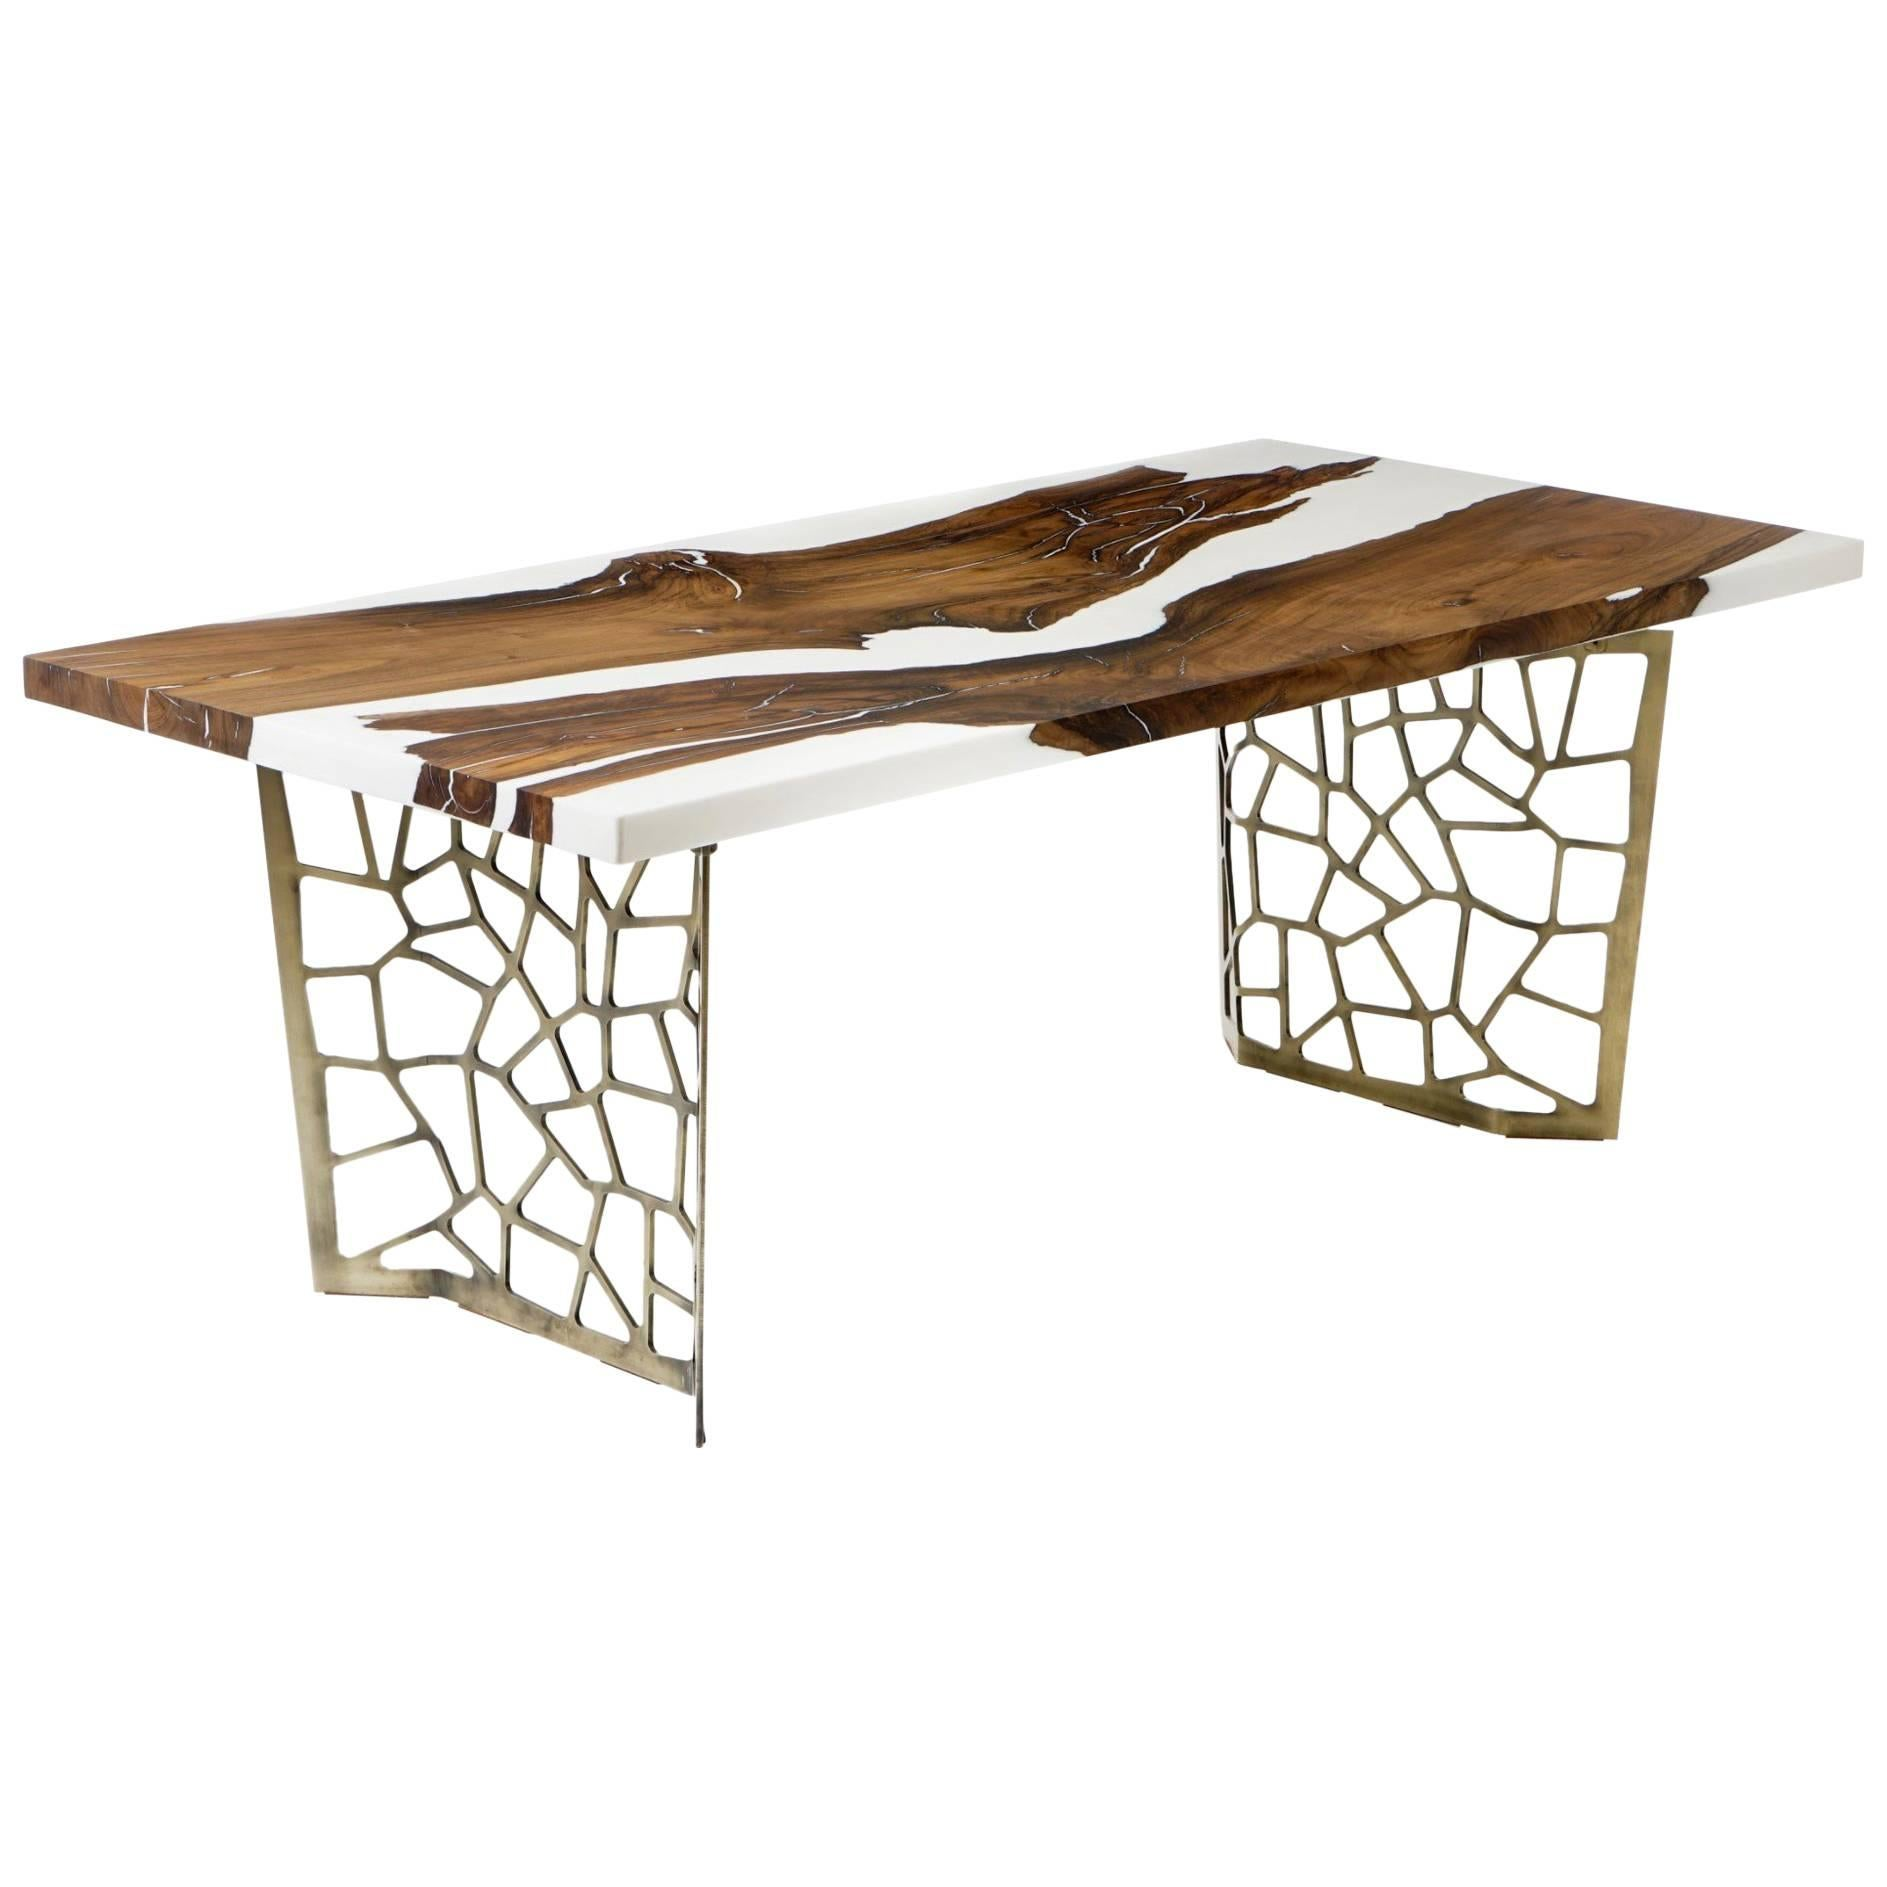 Hudson White 200 Epoxy Resin Dining Table For Sale at 1stdibs